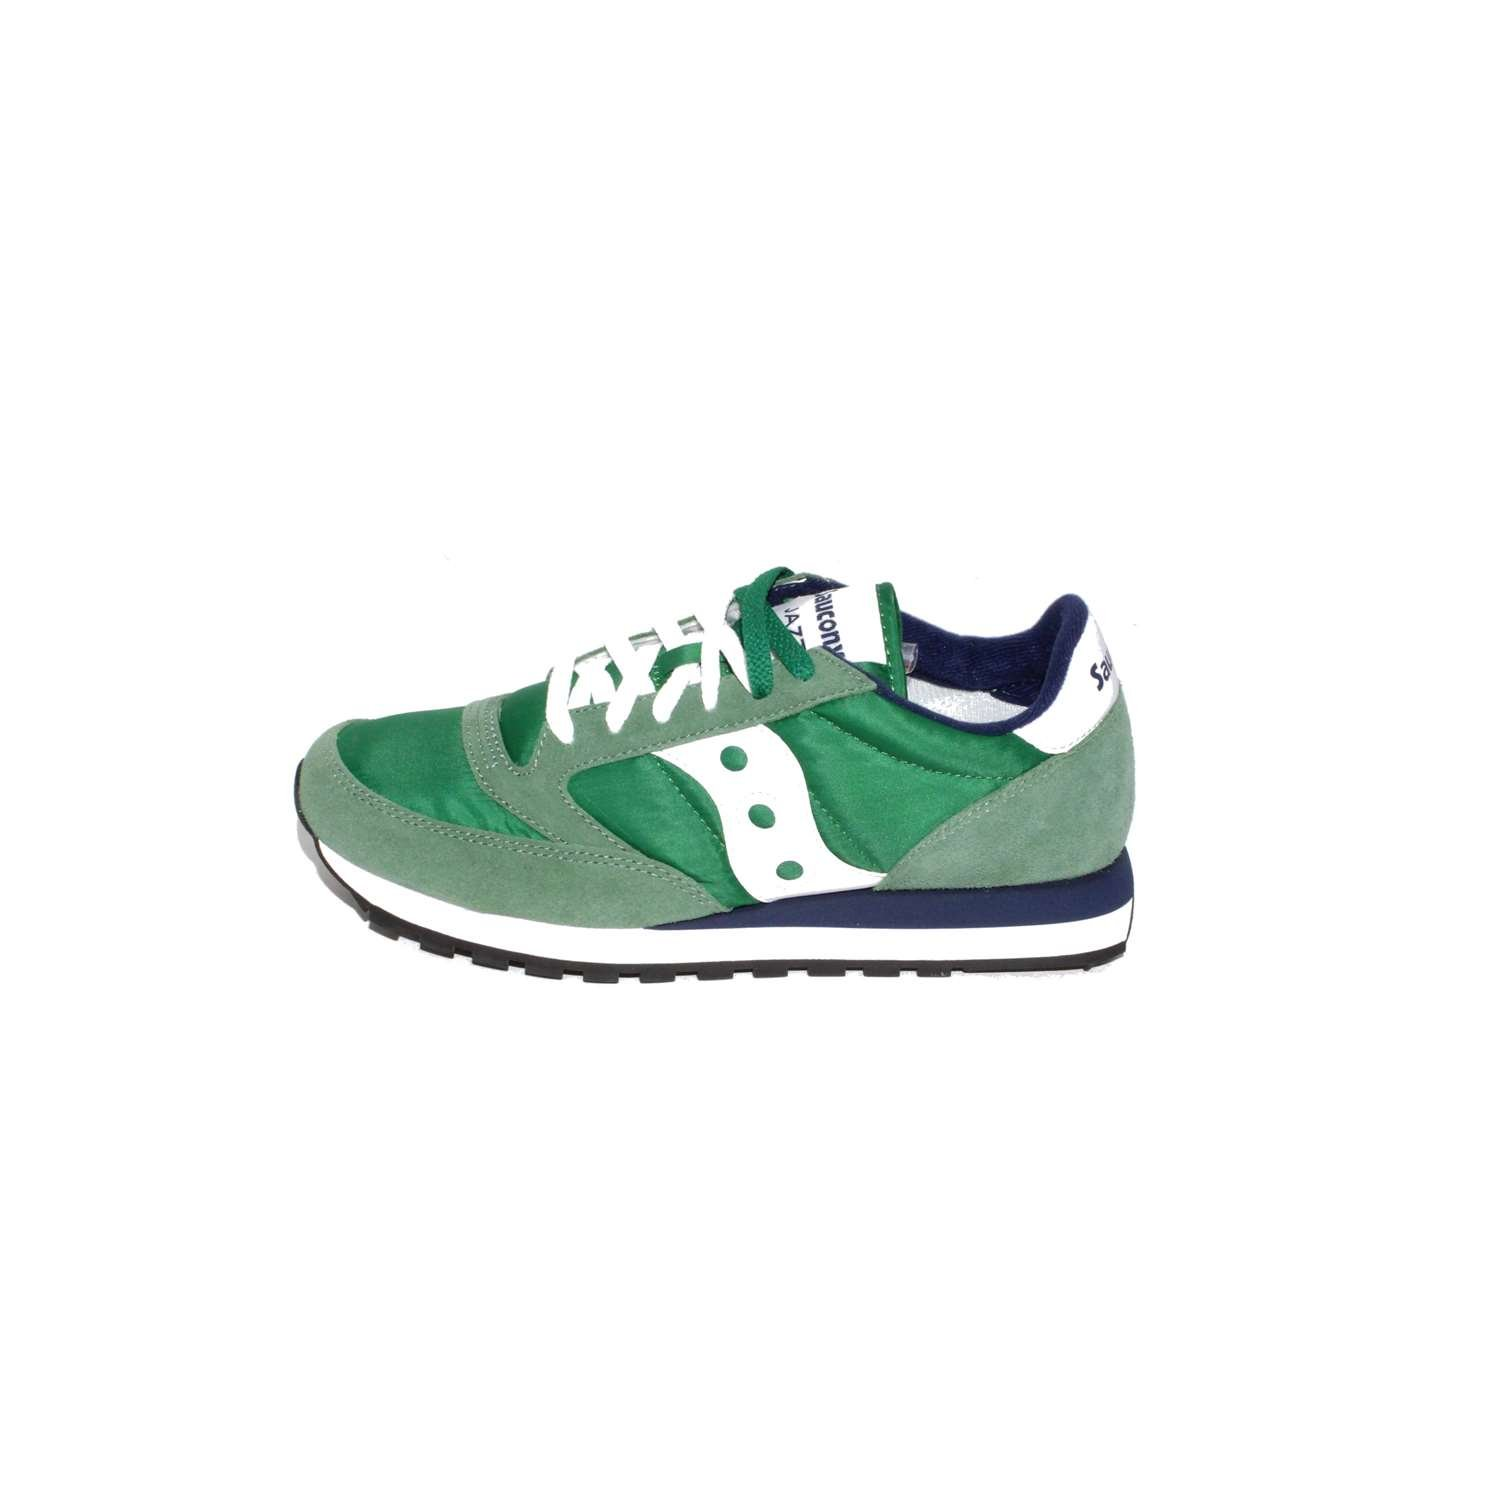 info for b2083 2e87a SAUCONY Scarpe Uomo S2044 447 Jazz Original Sneakers ...